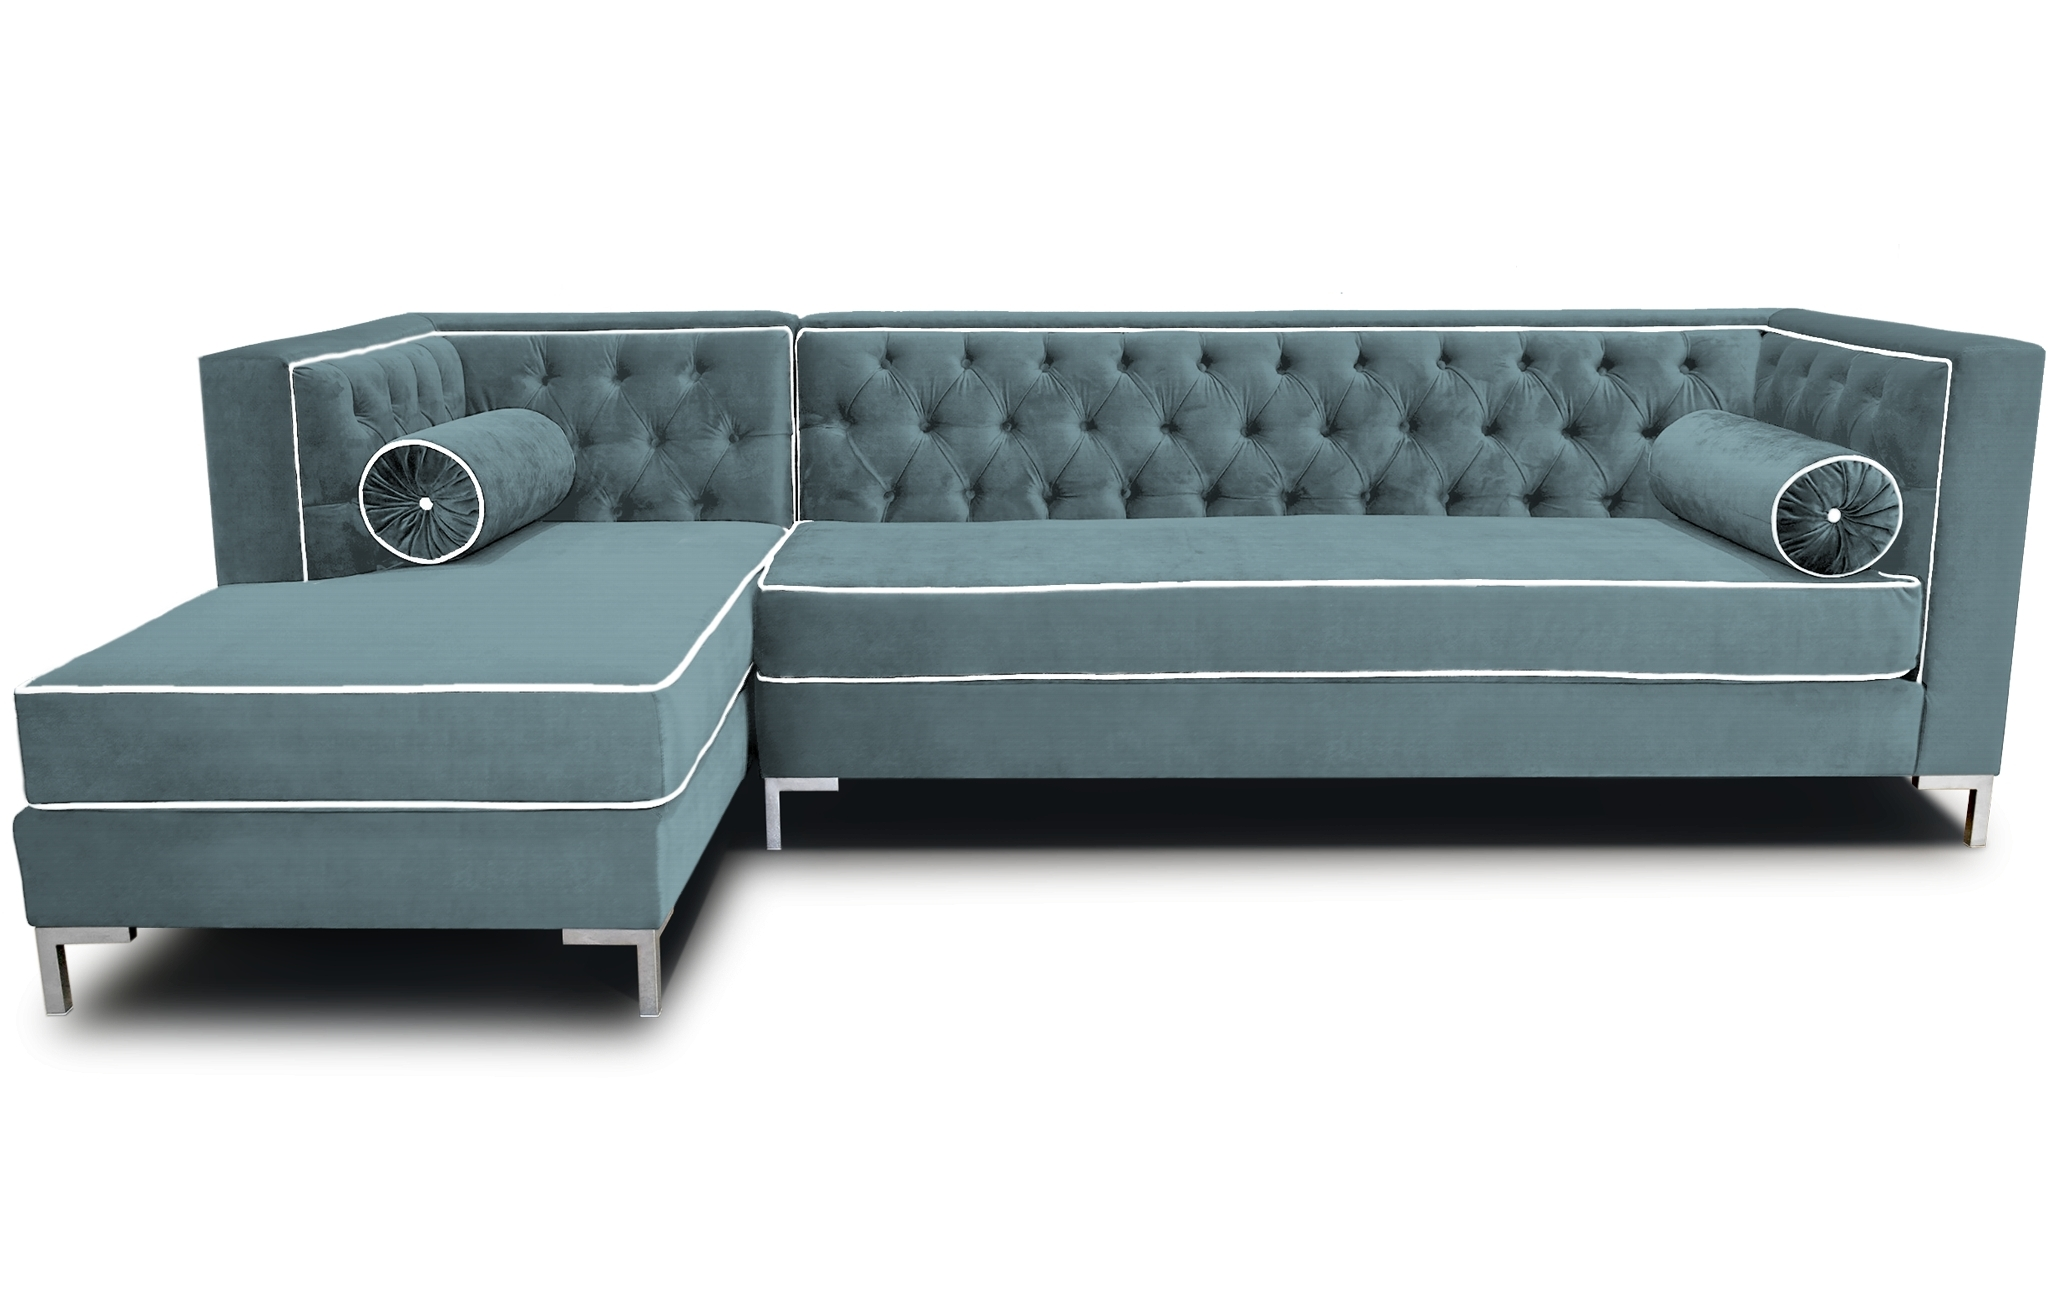 Furniture : Gray Fabric L Shape Sofa With Puffed Back Completed With Well Known L Shaped Sectional Sleeper Sofas (View 18 of 20)